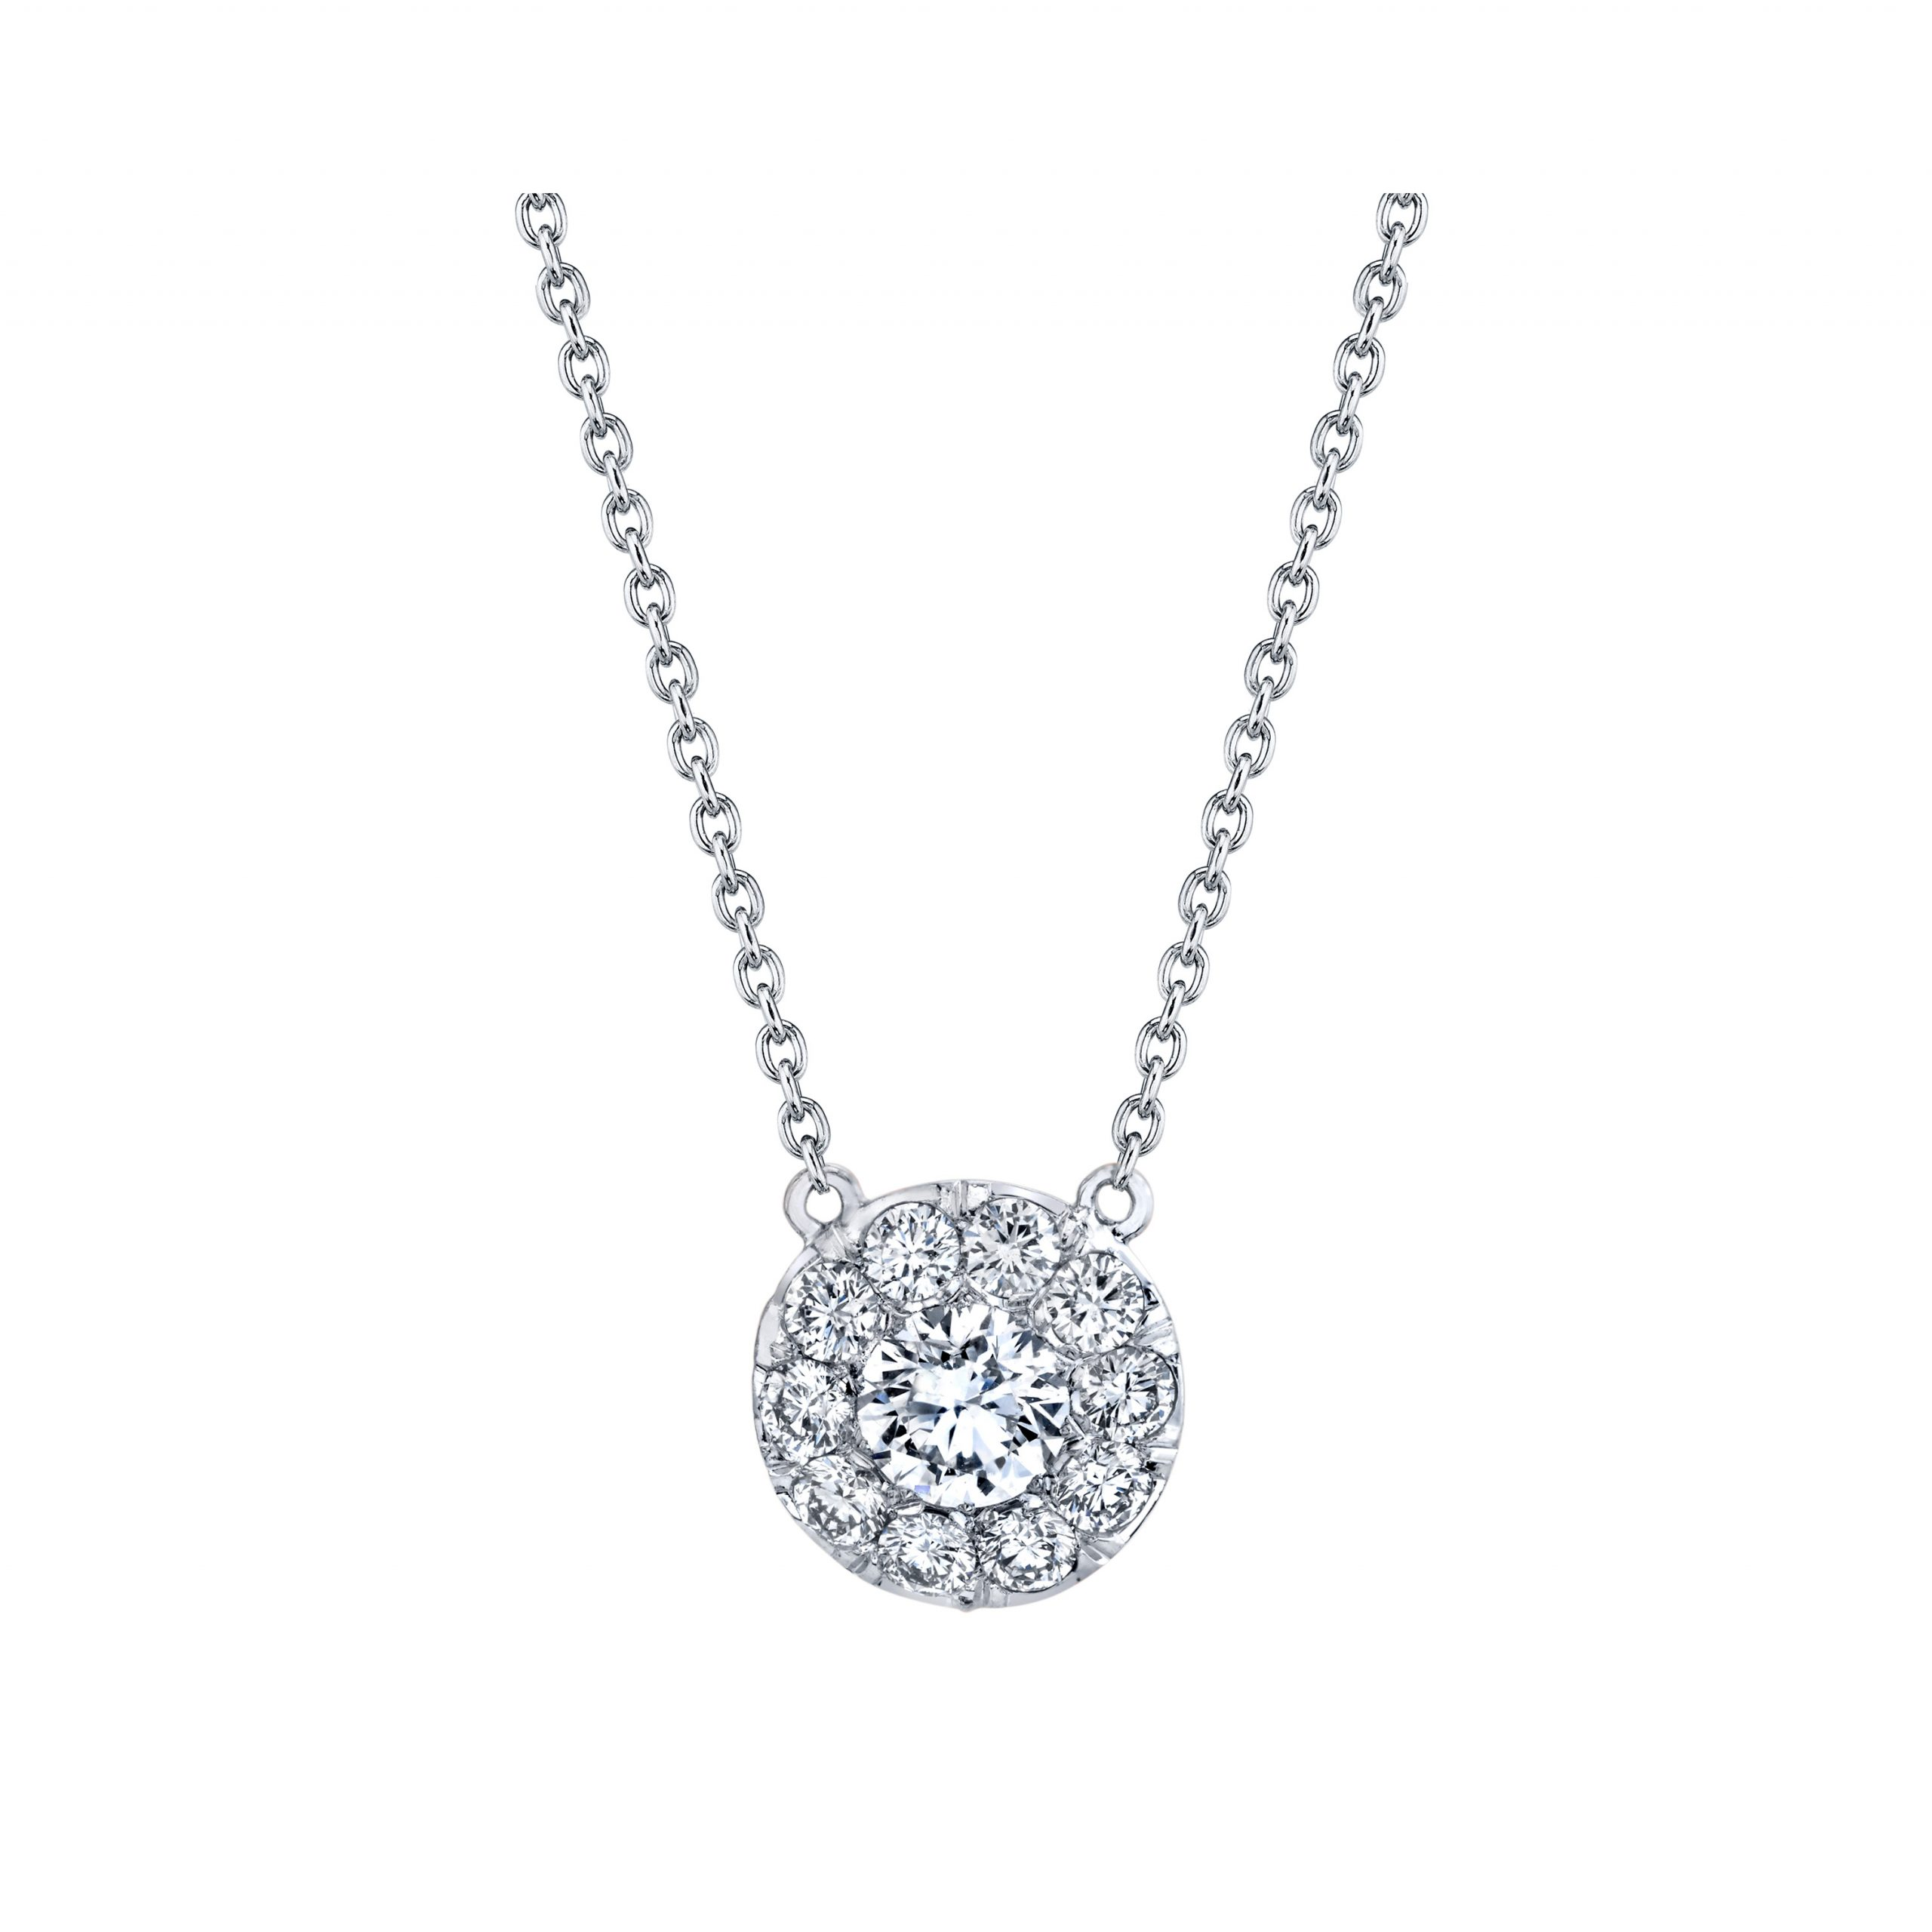 Lucile Round Brilliant Seamless Solitaire® Diamond Pendant 18k White Gold Front View by Oui by Jean Dousset